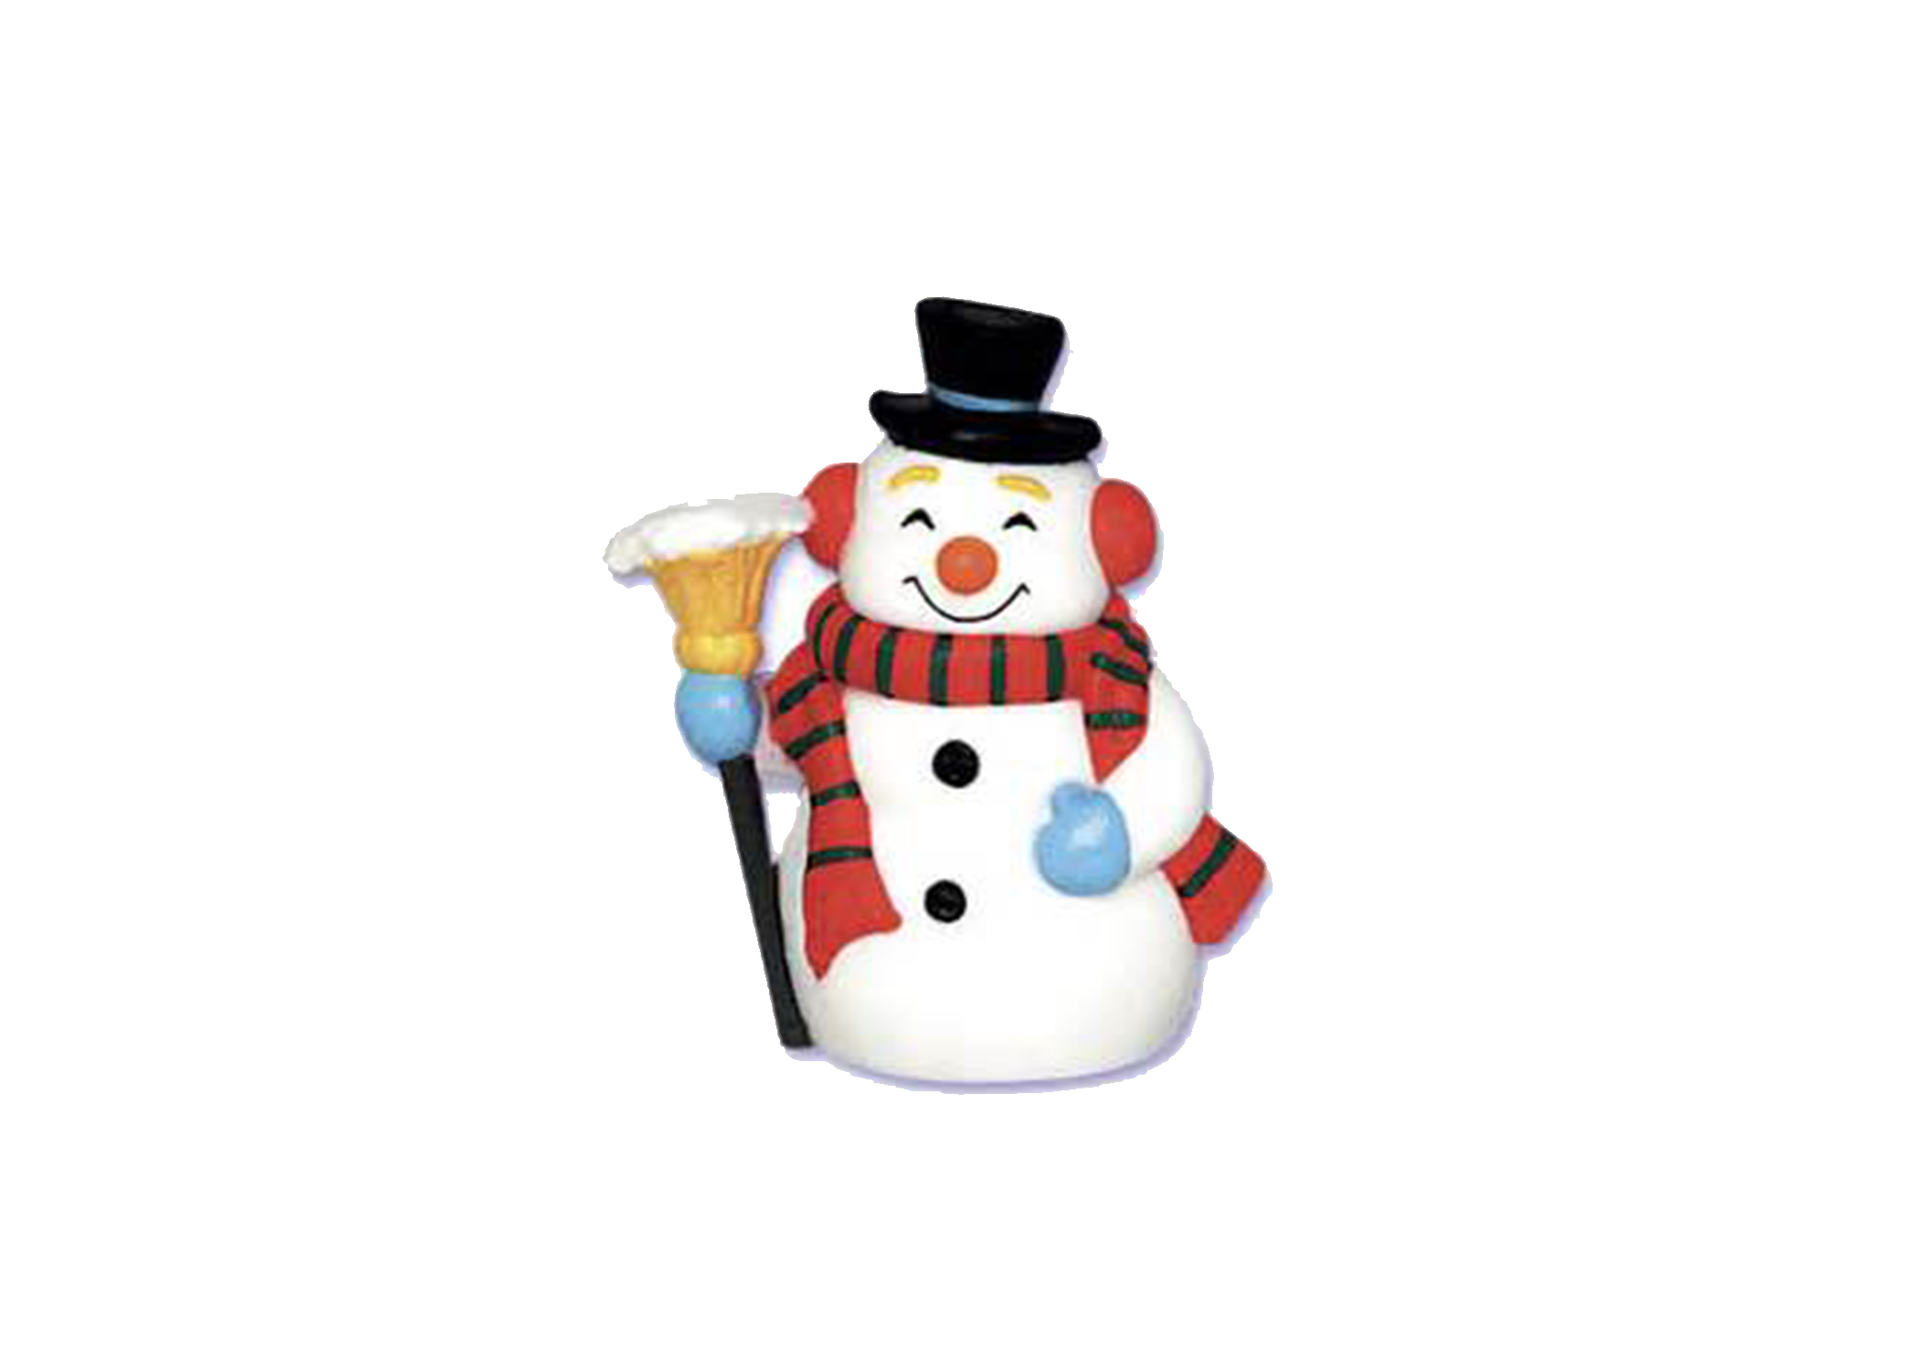 Snowman in a top hat with a broom